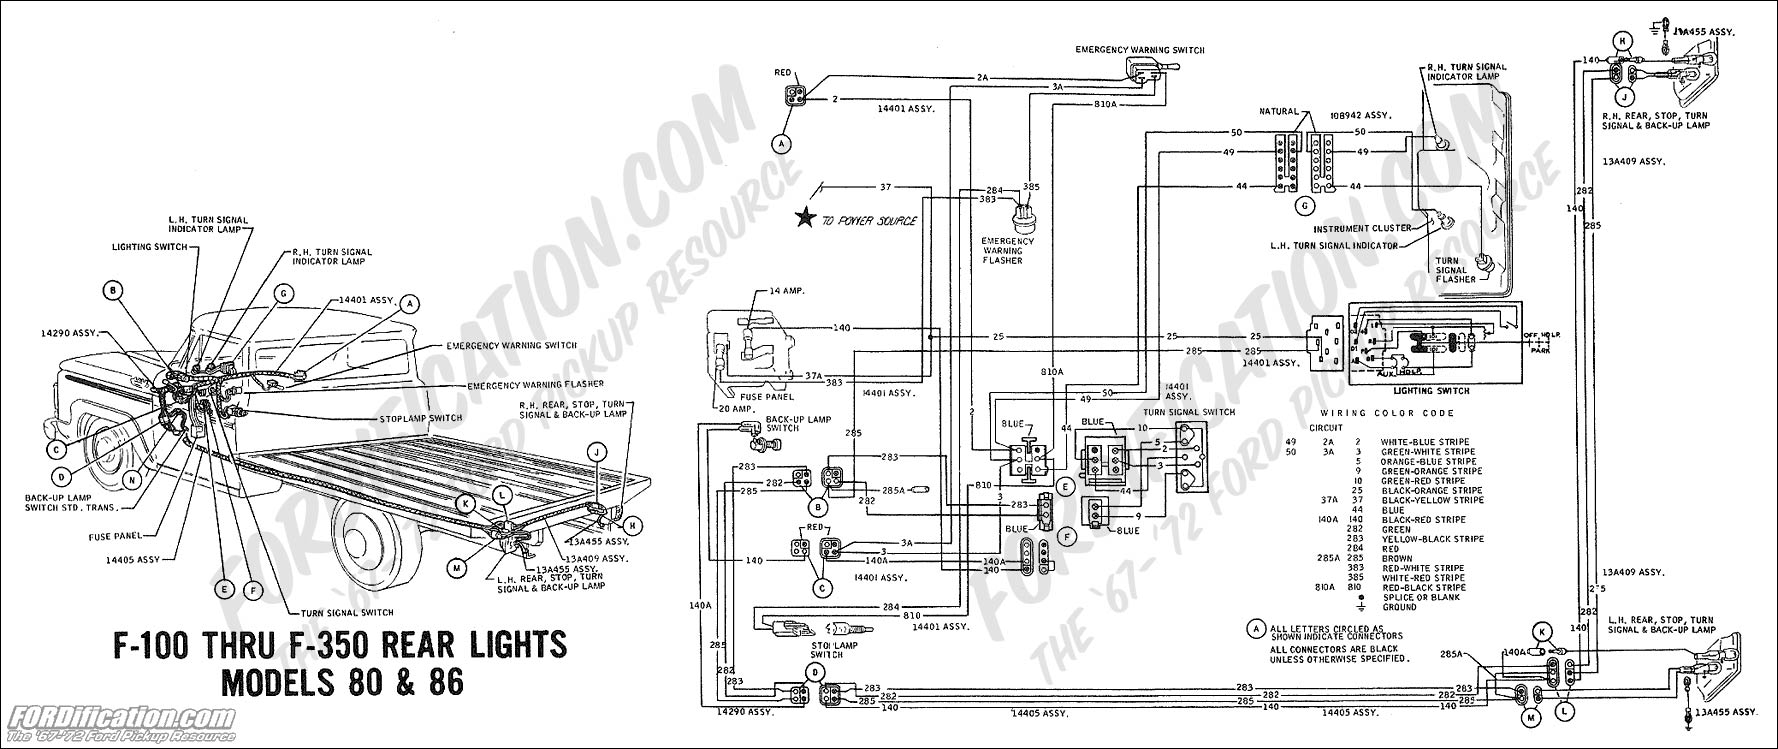 hight resolution of 1993 ford f700 wiring diagrams wiring diagram blogs 1996 ford f700 wiring diagrams 1996 f700 wiring diagram